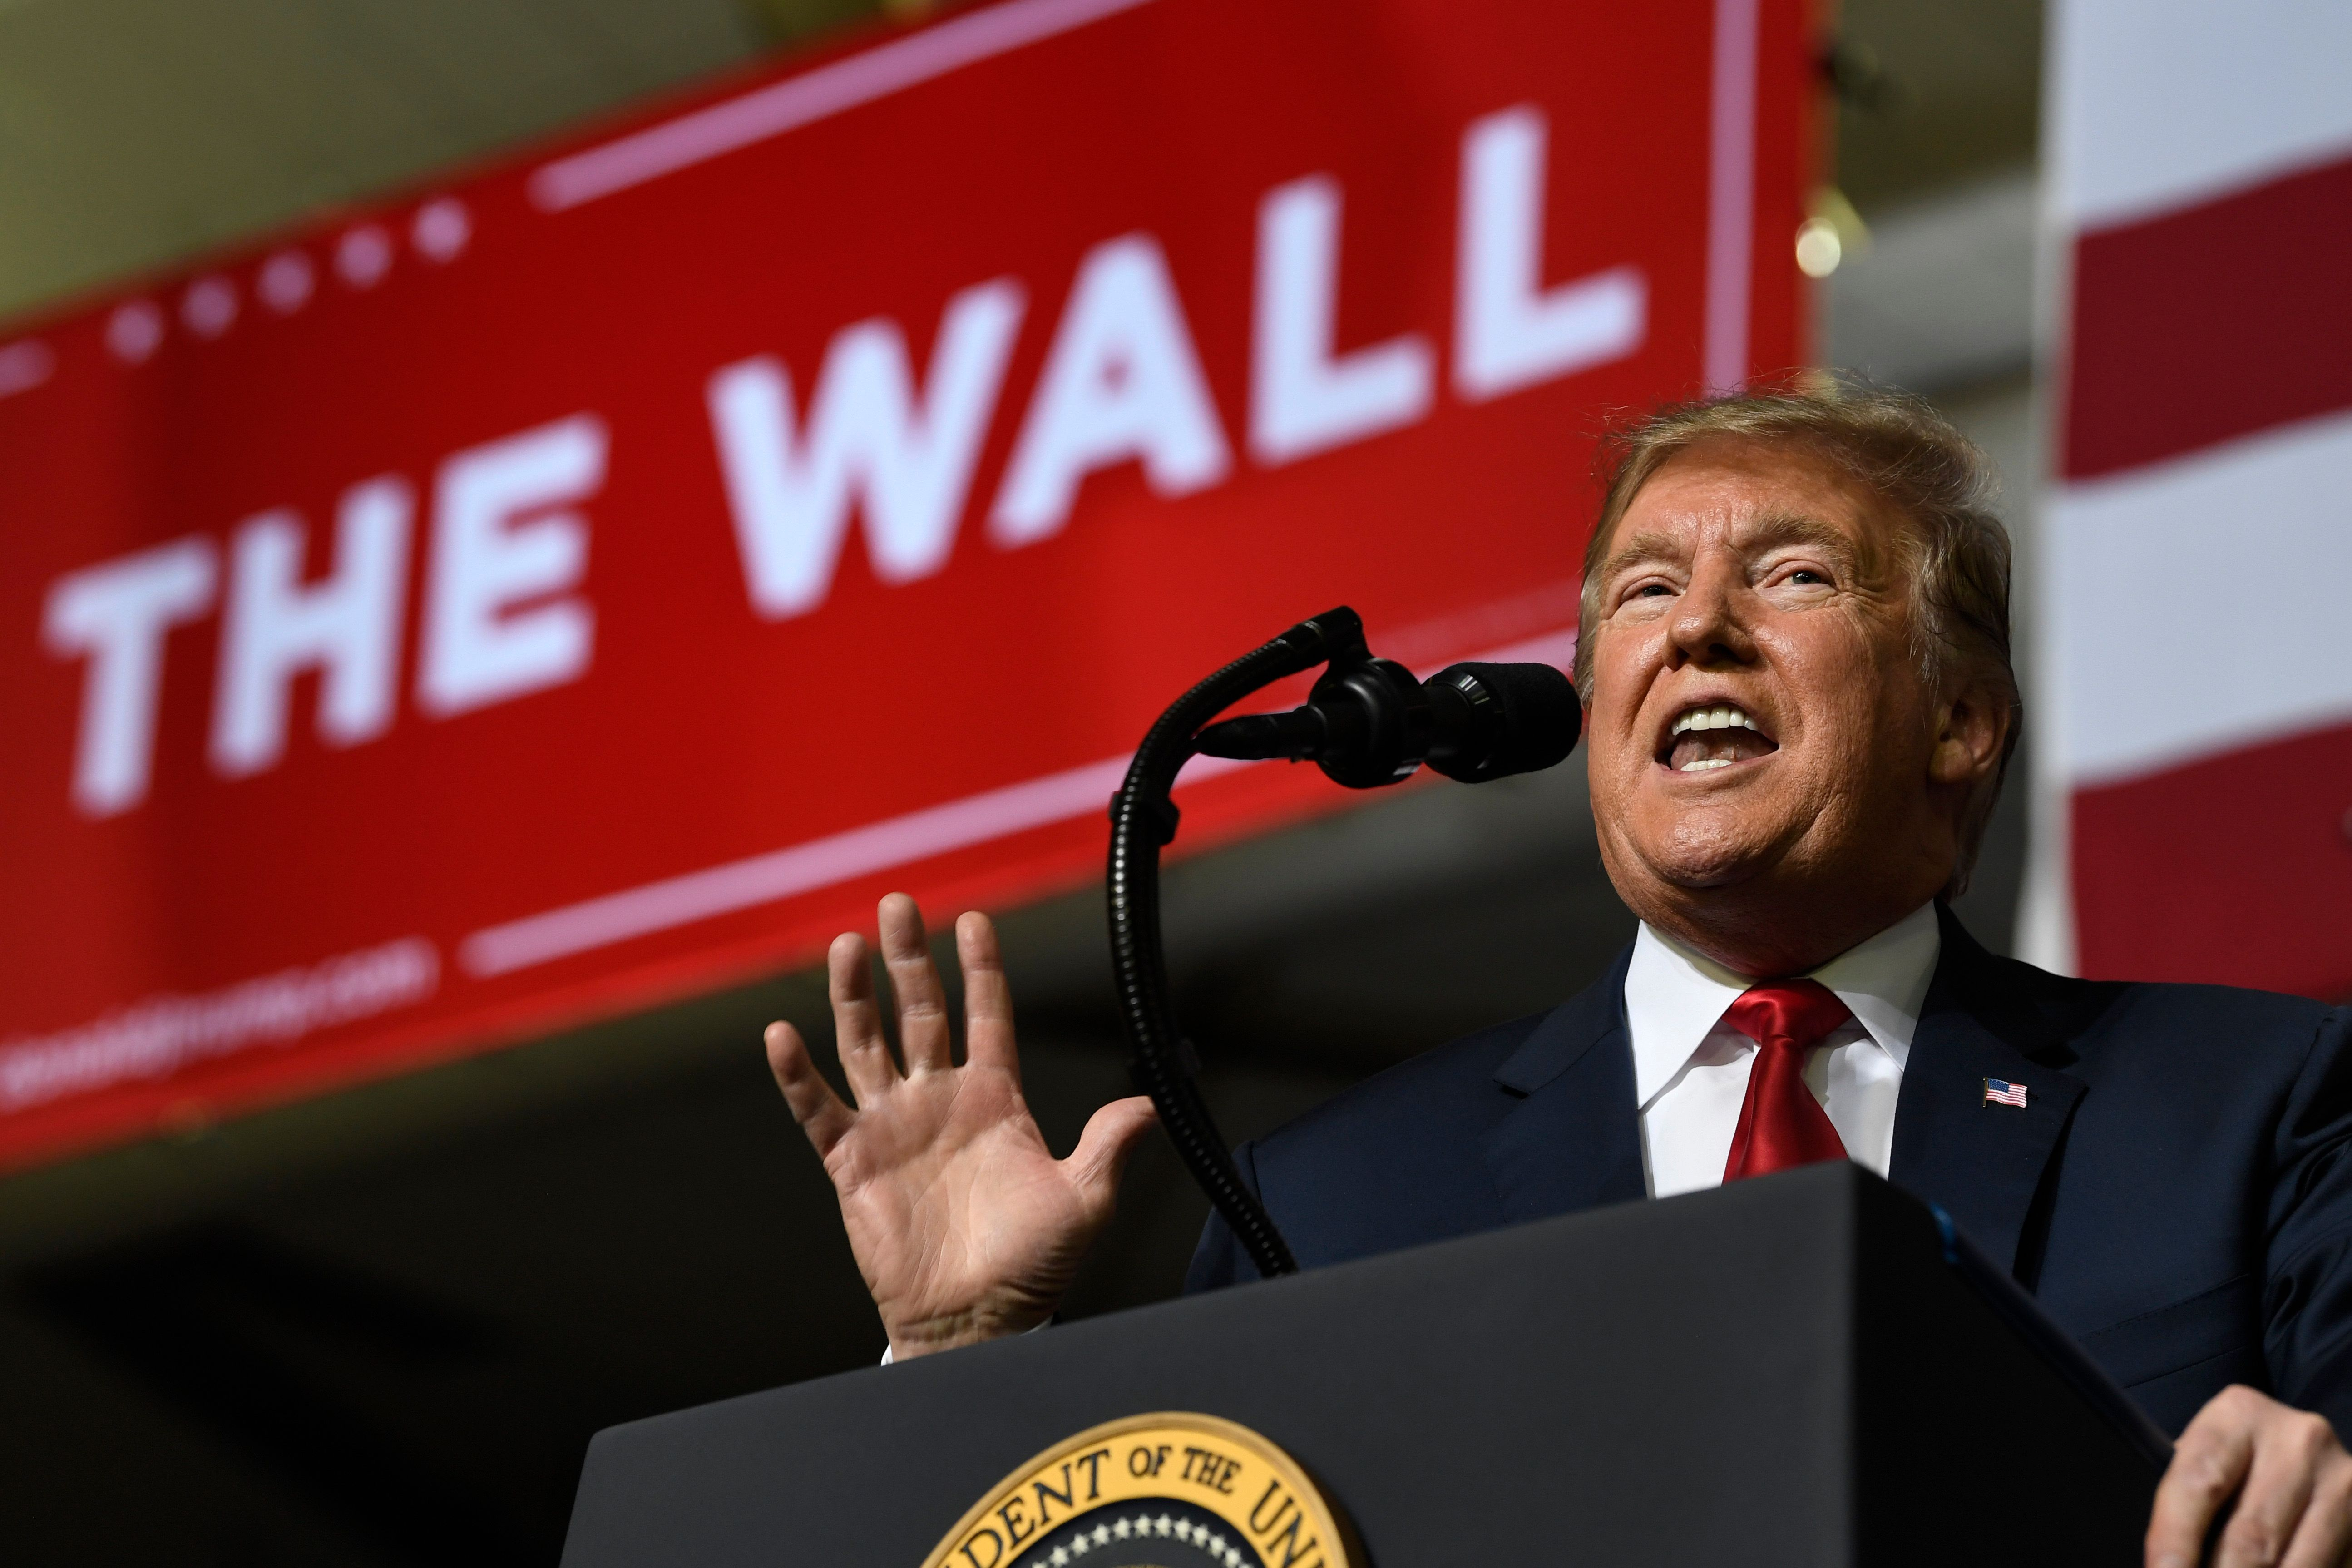 Trump Doubles Down On Border Security At Rally: 'Walls Save